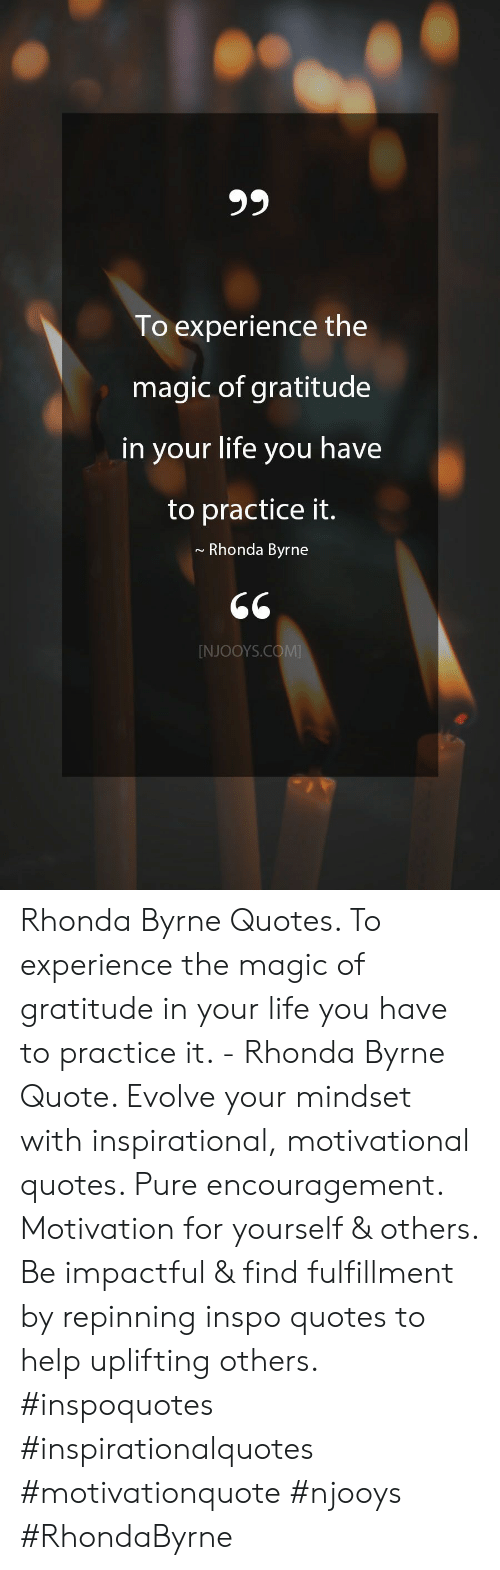 gratitude: 99  To experience the  magic of gratitude  in your life you have  to practice it.  Rhonda Byrne  [NJOOYS.COM Rhonda Byrne Quotes. To experience the magic of gratitude in your life you have to practice it. - Rhonda Byrne Quote. Evolve your mindset with inspirational, motivational quotes. Pure encouragement. Motivation for yourself & others. Be impactful & find fulfillment by repinning inspo quotes to help uplifting others. #inspoquotes #inspirationalquotes #motivationquote #njooys #RhondaByrne